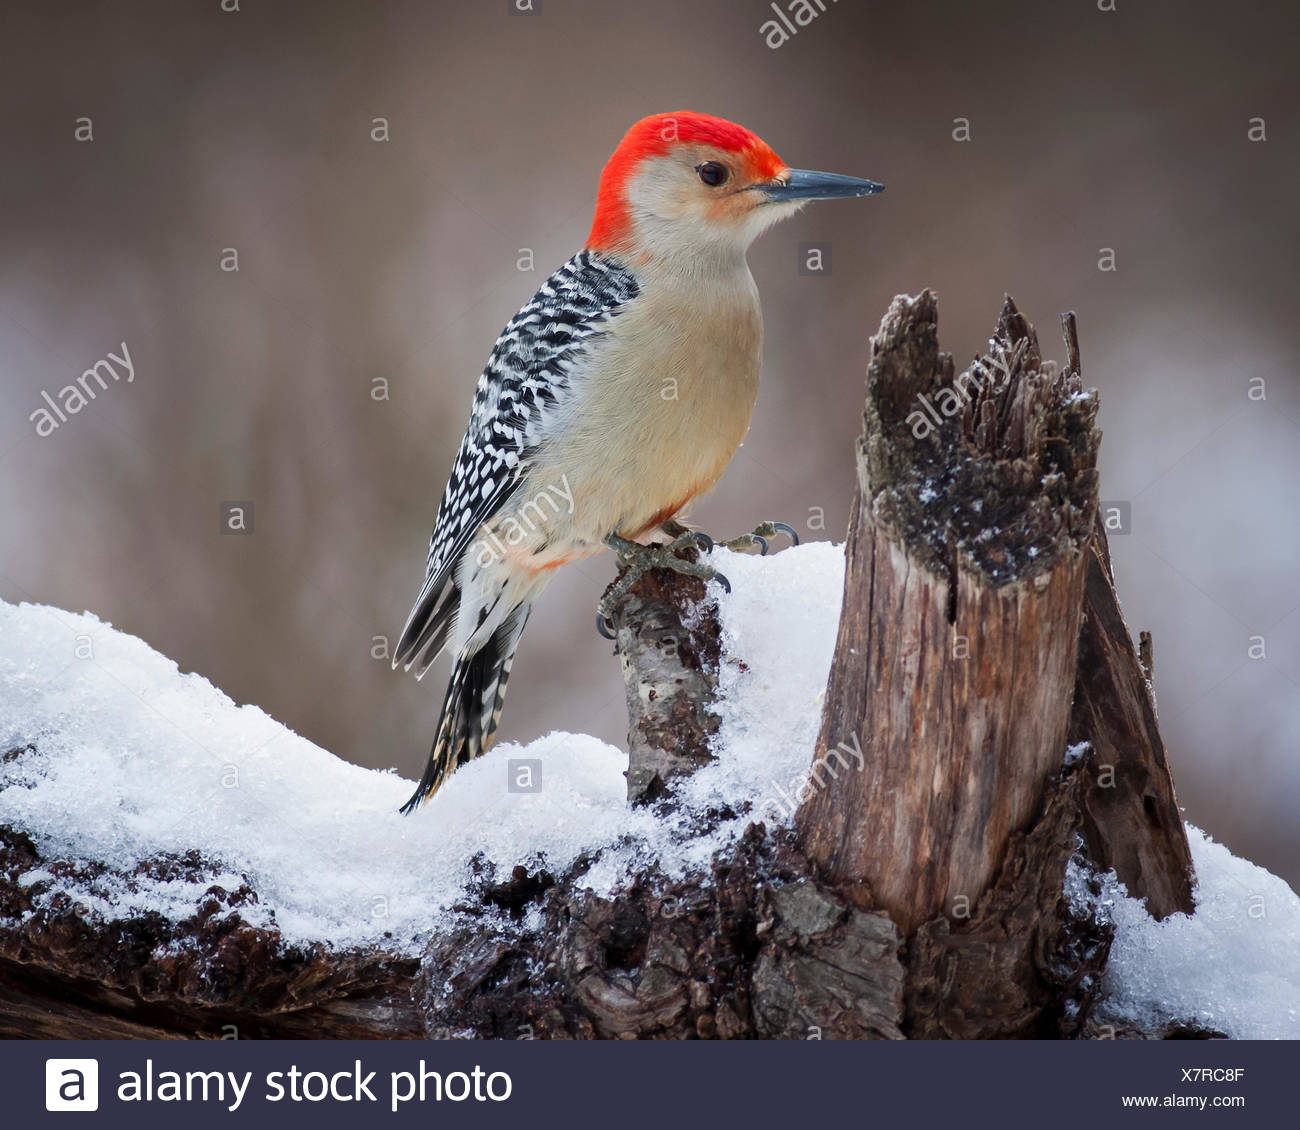 Red Headed Woodpecker perching on a branch covered in snow. - Stock Image